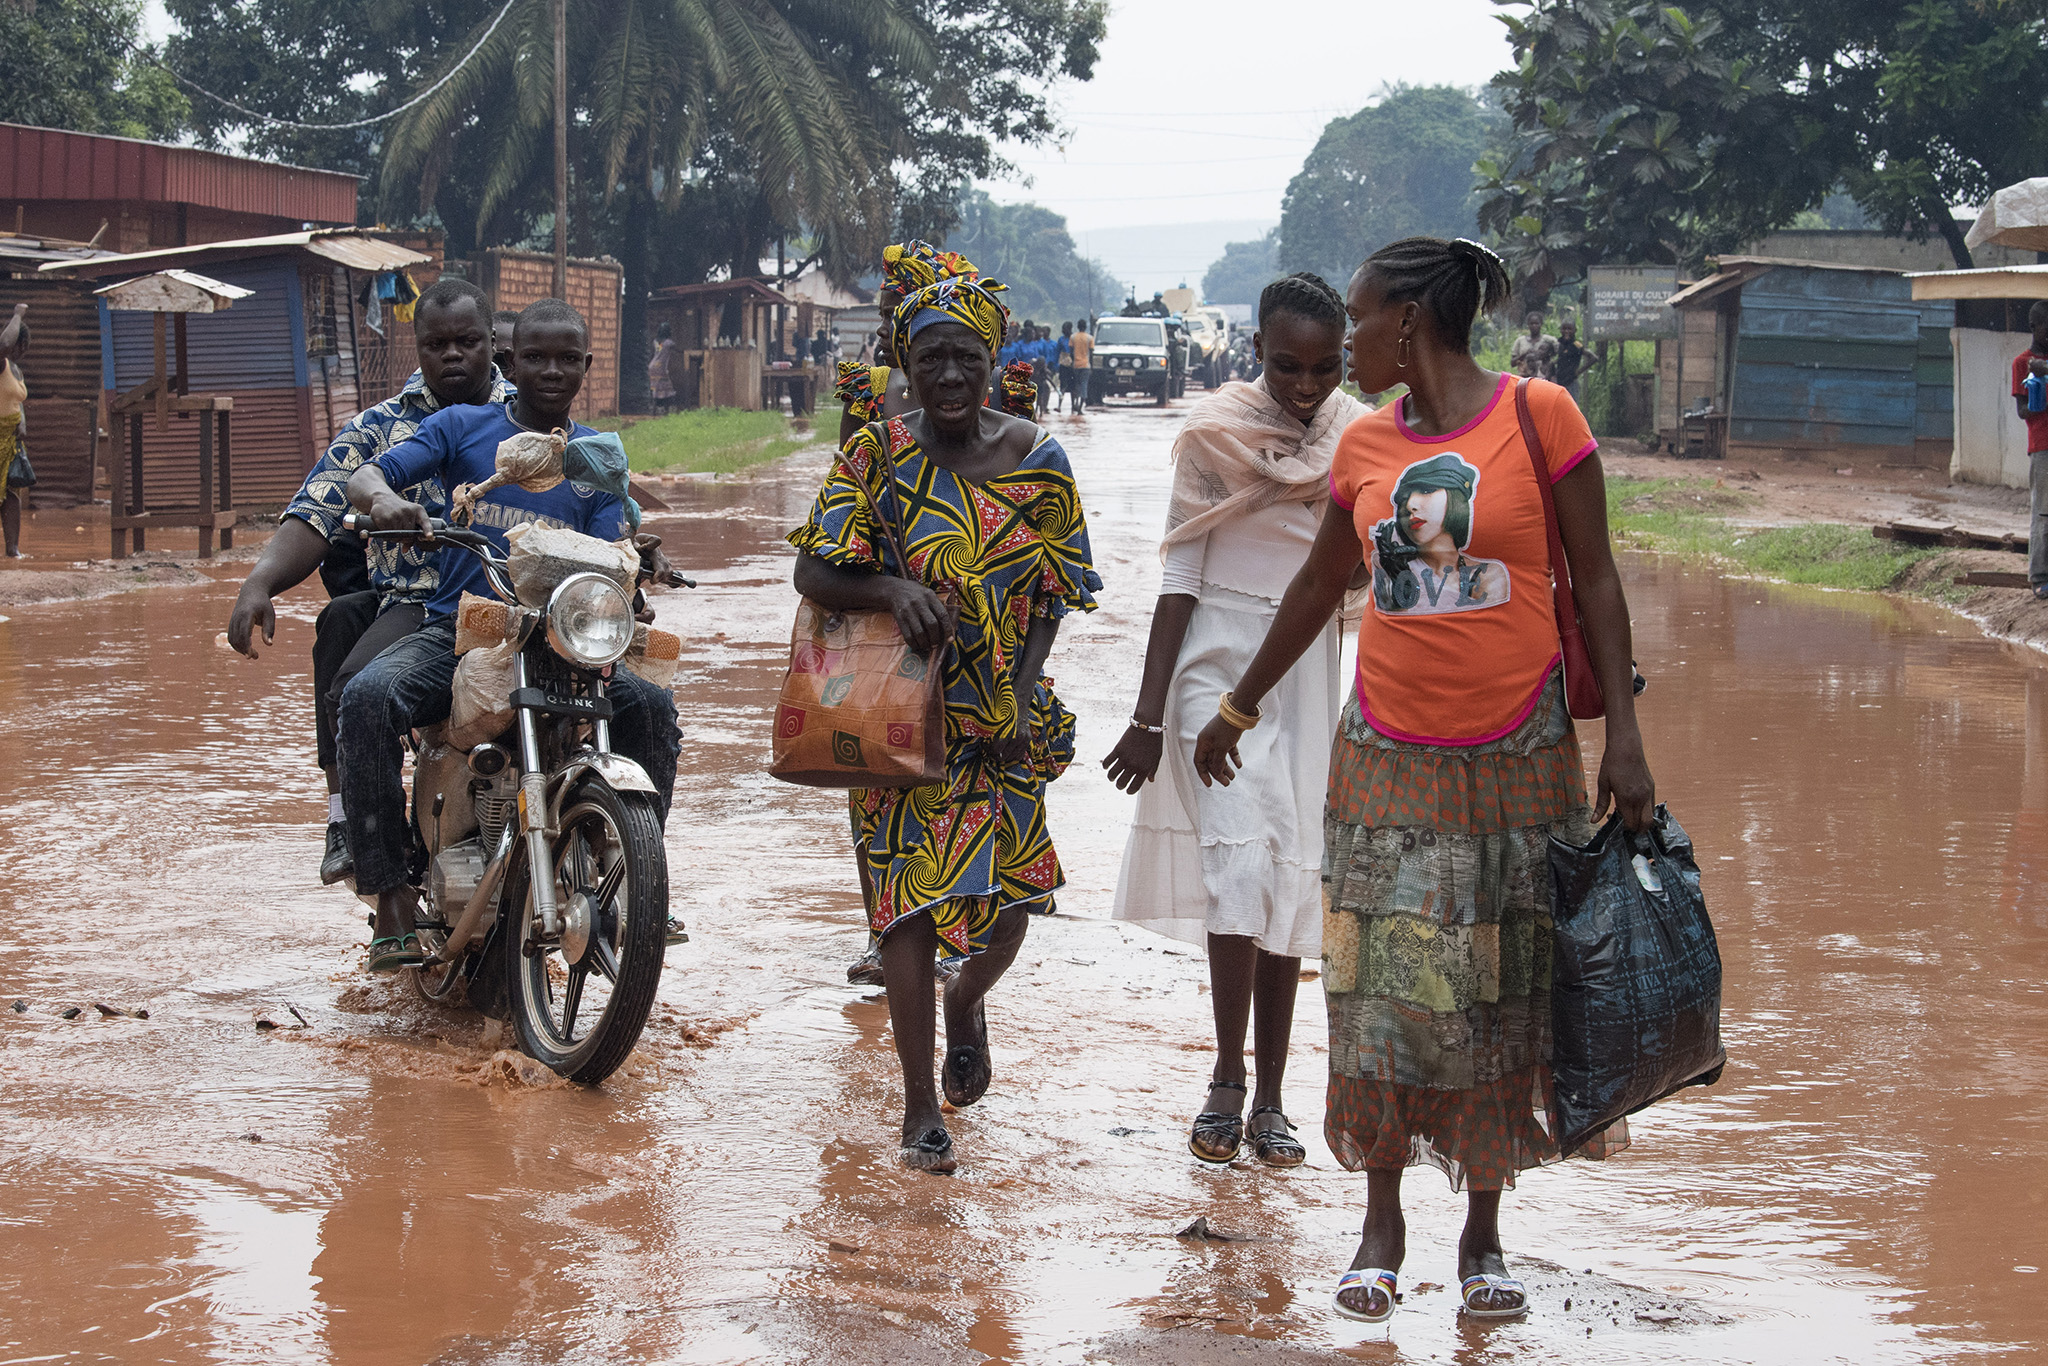 Residents walk down a street in the PK5 district in Bangui, Central African Republic